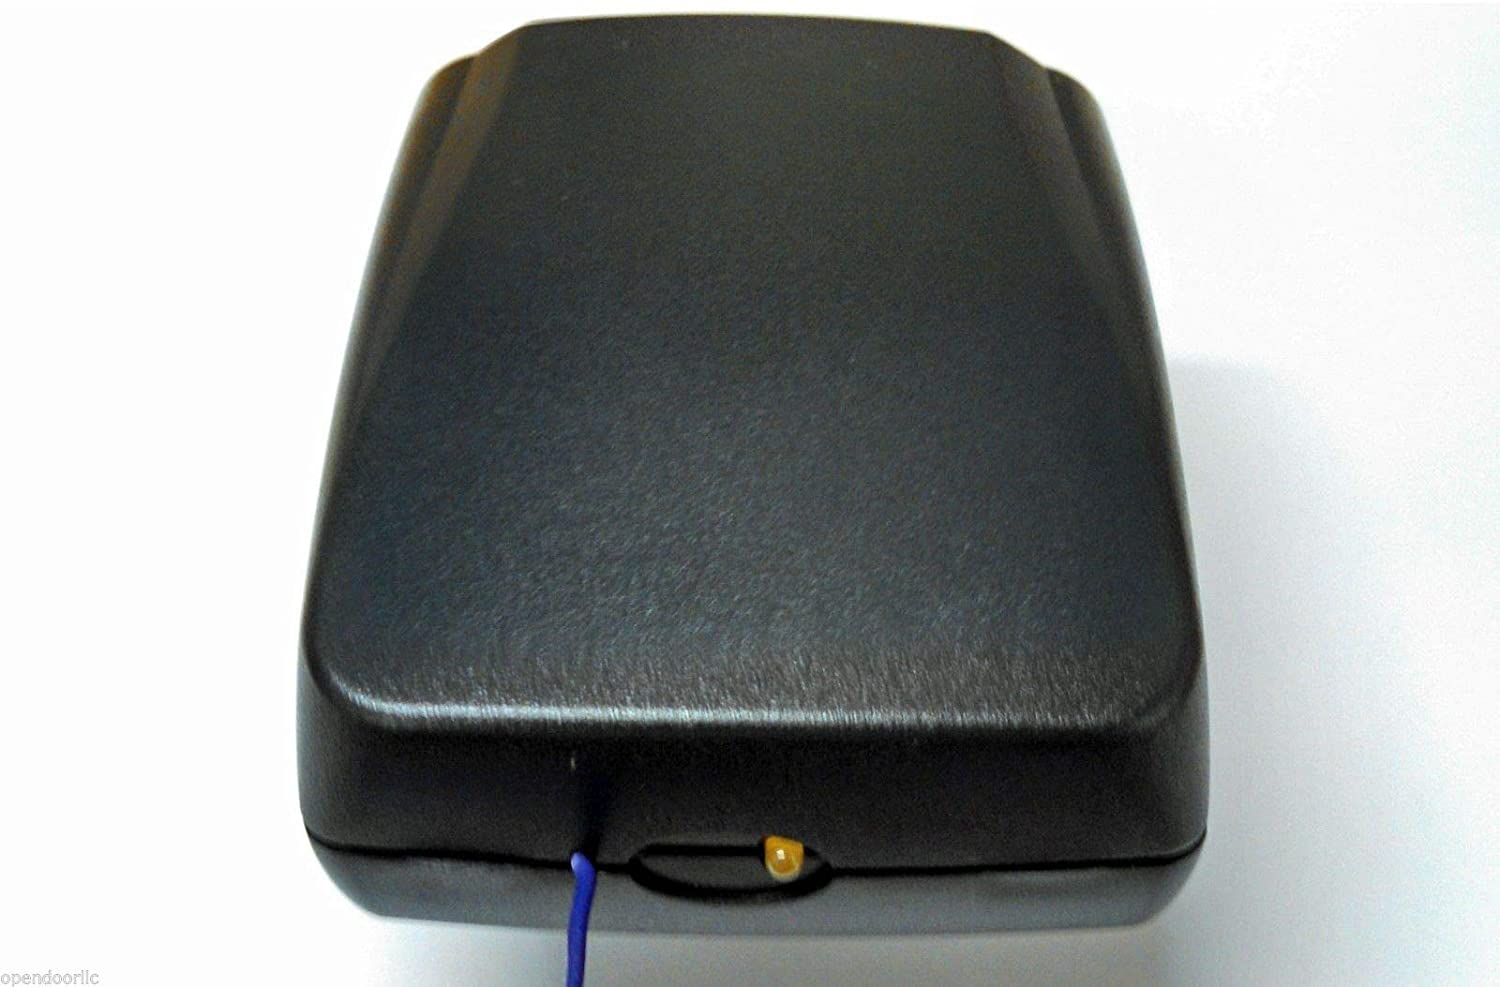 CAR2U Repeater for Security 2.0 Garage Opener LiftMaster Chamberlain RPTR Sears